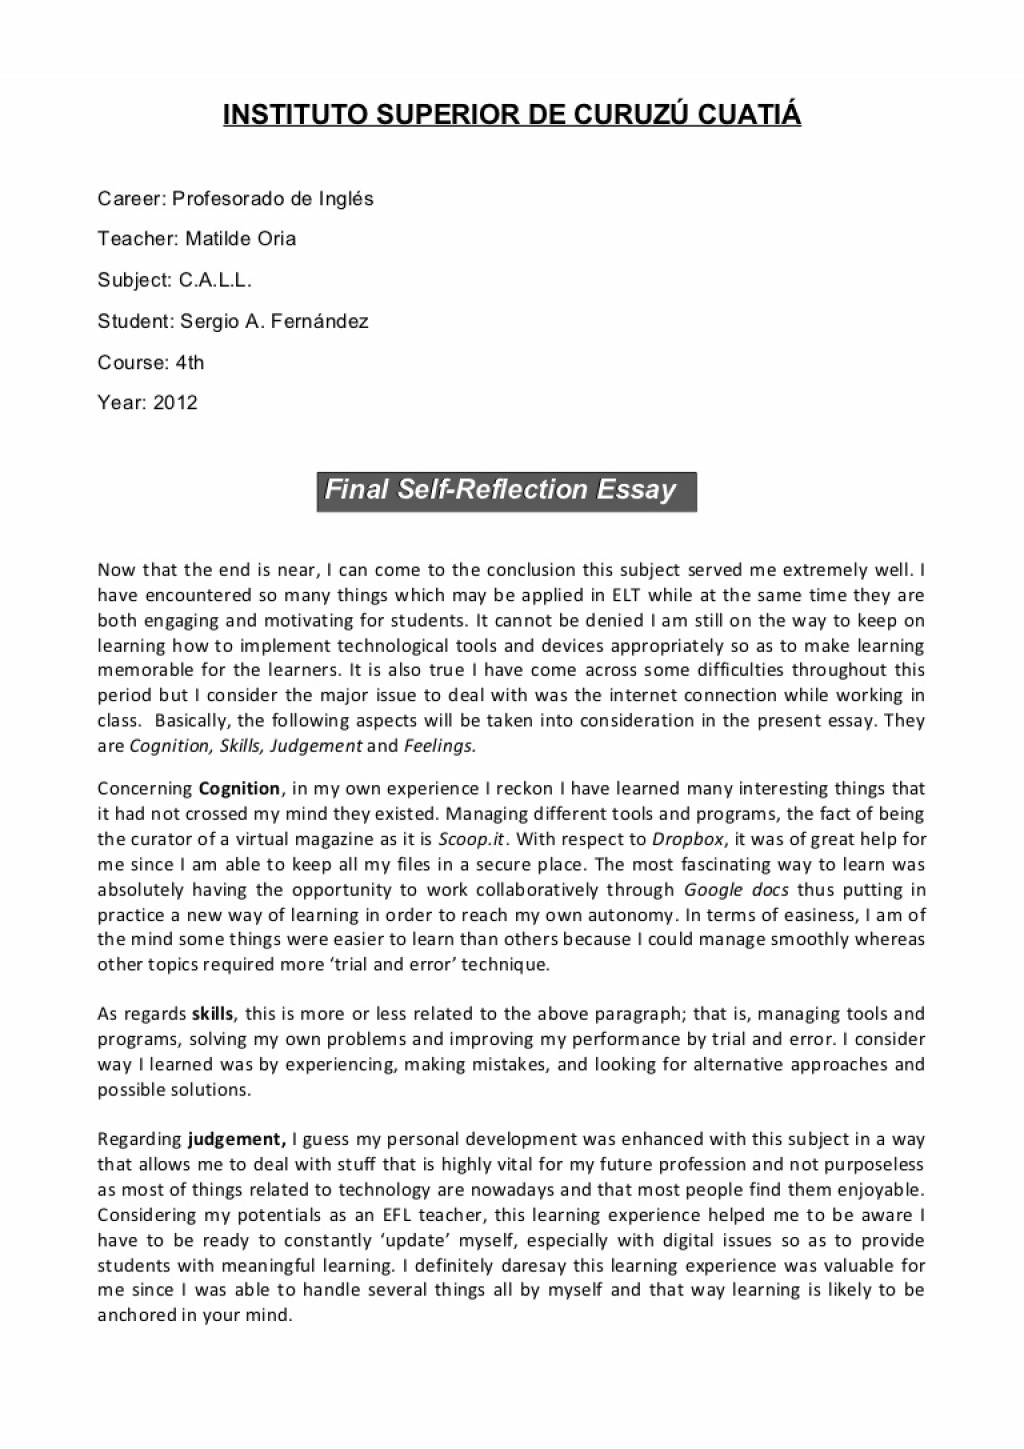 007 Reflectionsay Format Reflective Self Examples Mla Sample Sergio Finalself Reflectionessay Phpapp01 Thumbn Argumentative Apa Formal Tagalog Asa Critical Mba Scholarship Wondrous Reflection Essay Example Form Guidelines Large